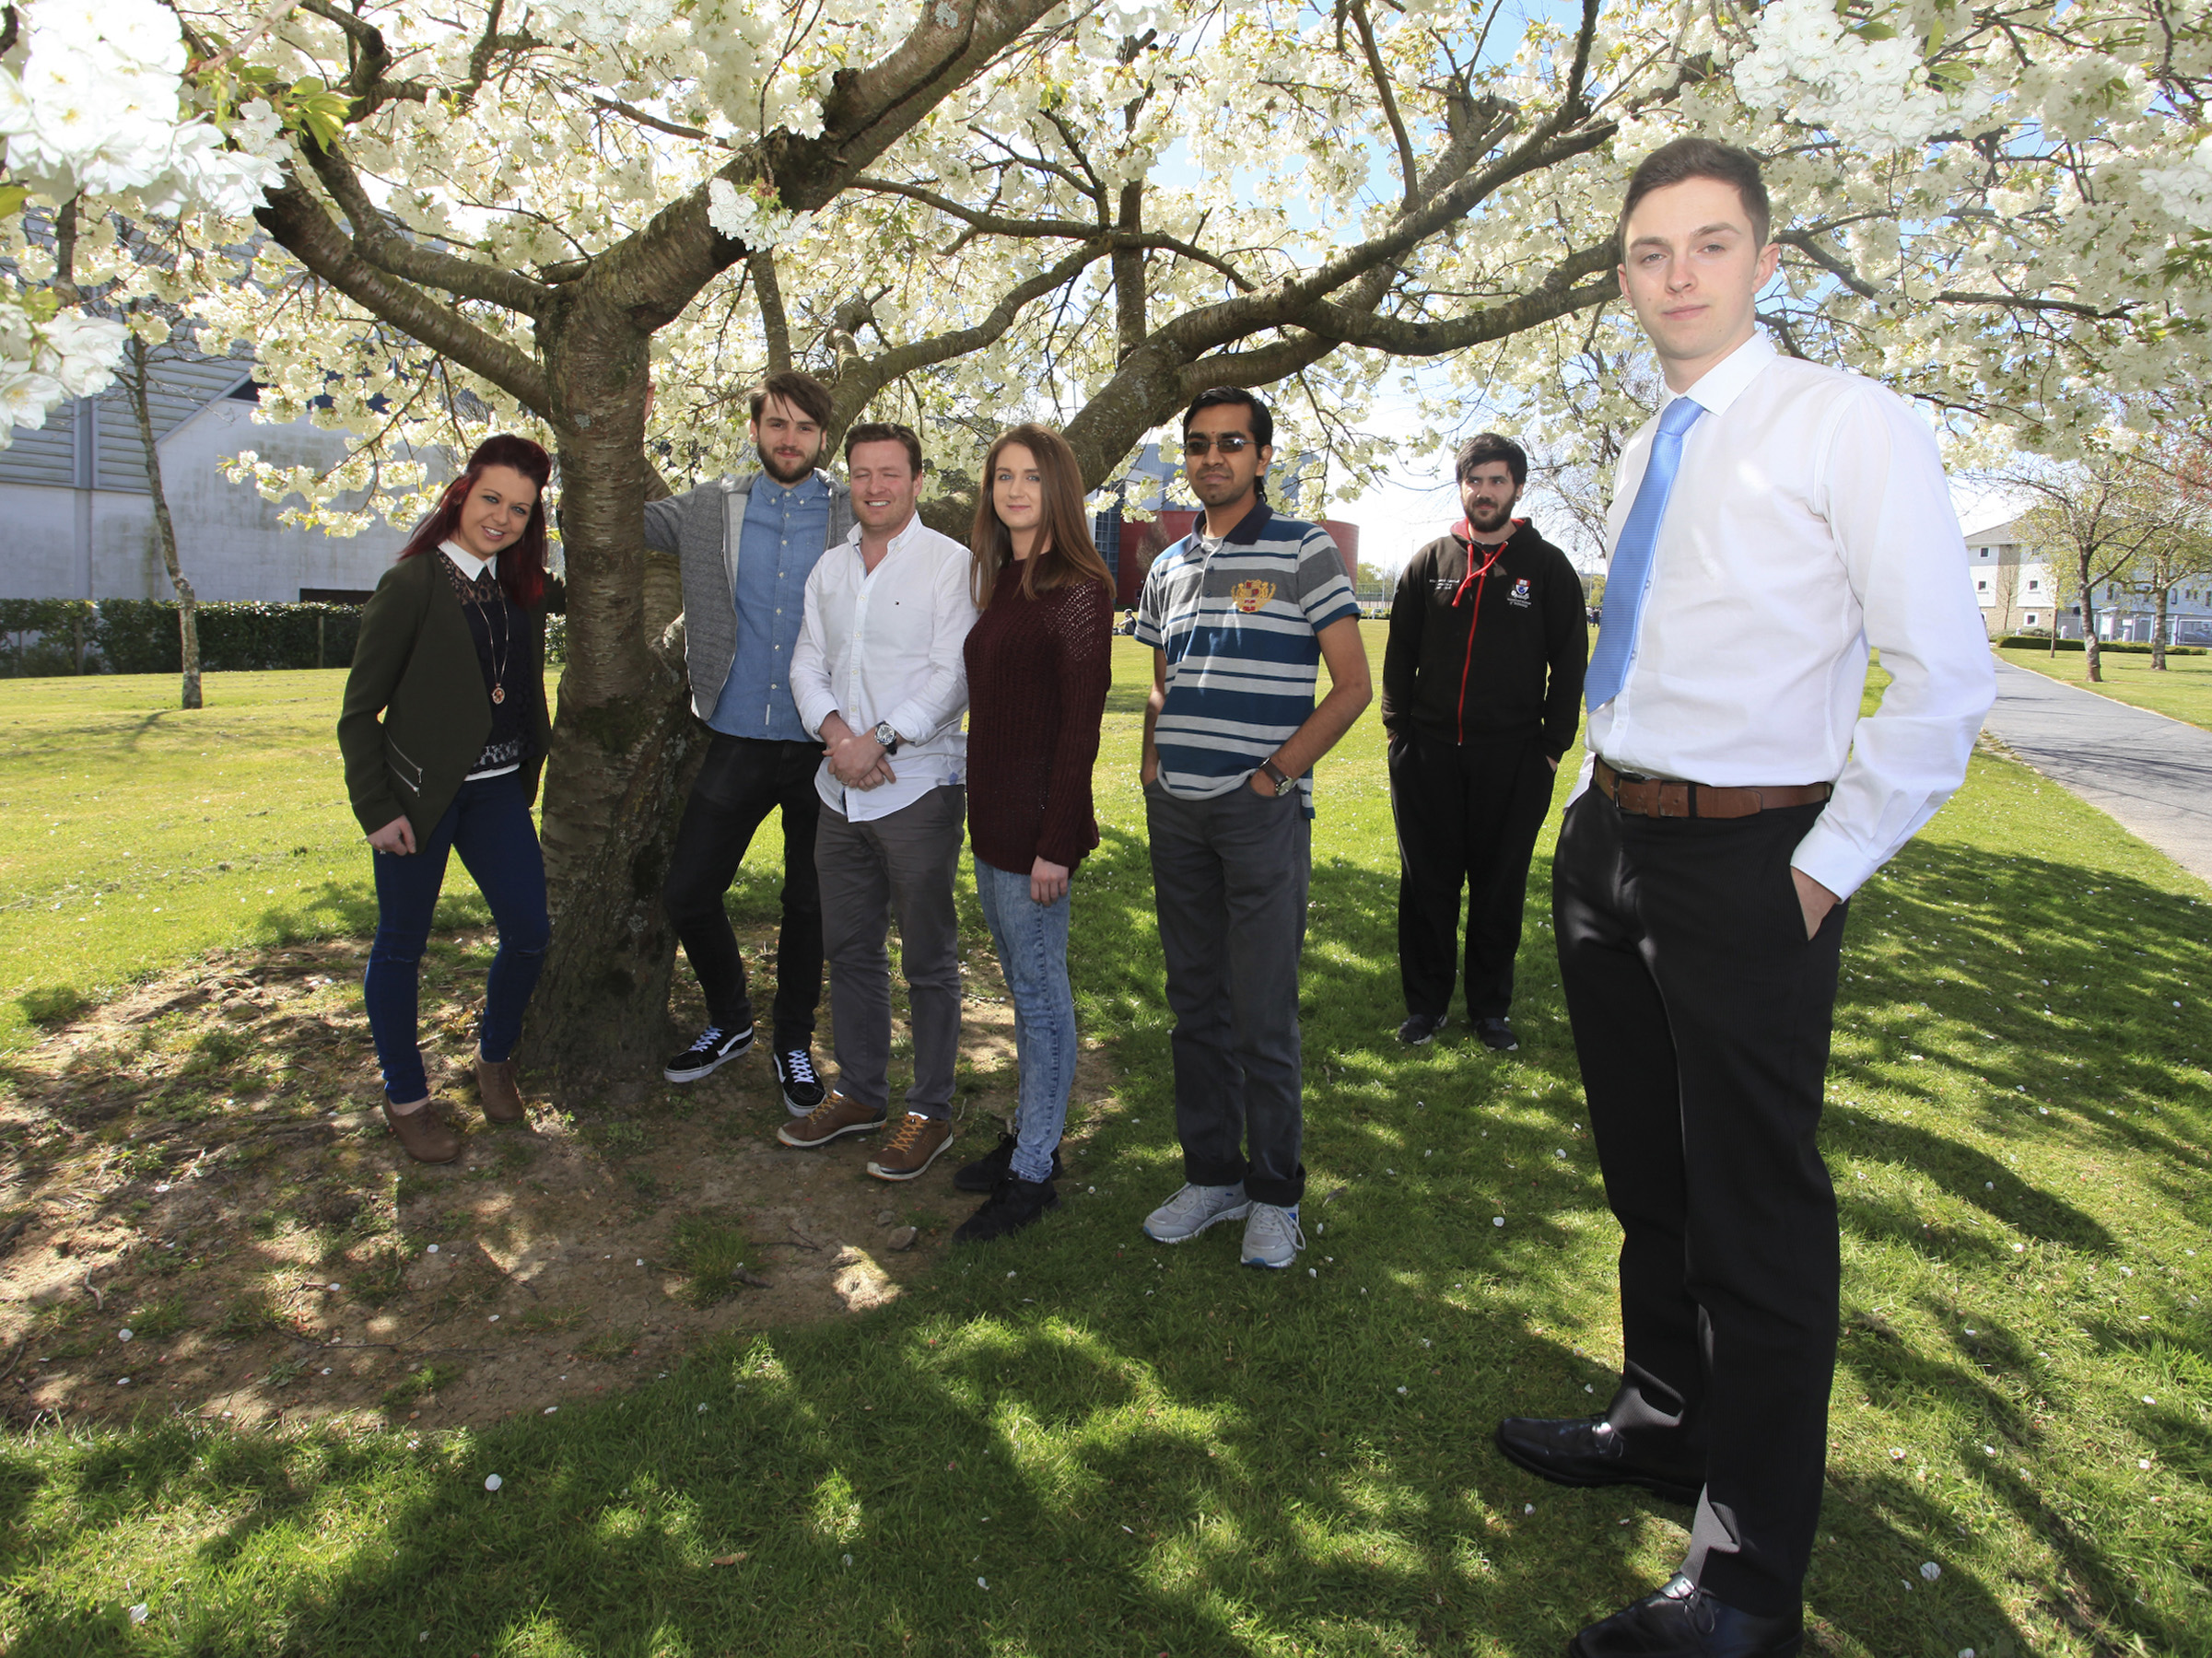 Pictured from left are Chloe Byrne, BSc in General Nursing; Darragh Hynes, BSc (Hons) in Applied Computing; Keith McGrory, BSc (Hons) in Quantity Surveying;  Rachael O'Regan, BSc in Applied Computing; Uma Shivasiddhath, PhD Student; Aiden Keating, BSc (Hons) in Applied Computing; and John Molloy, BSc (Hons) in Agricultural Science.